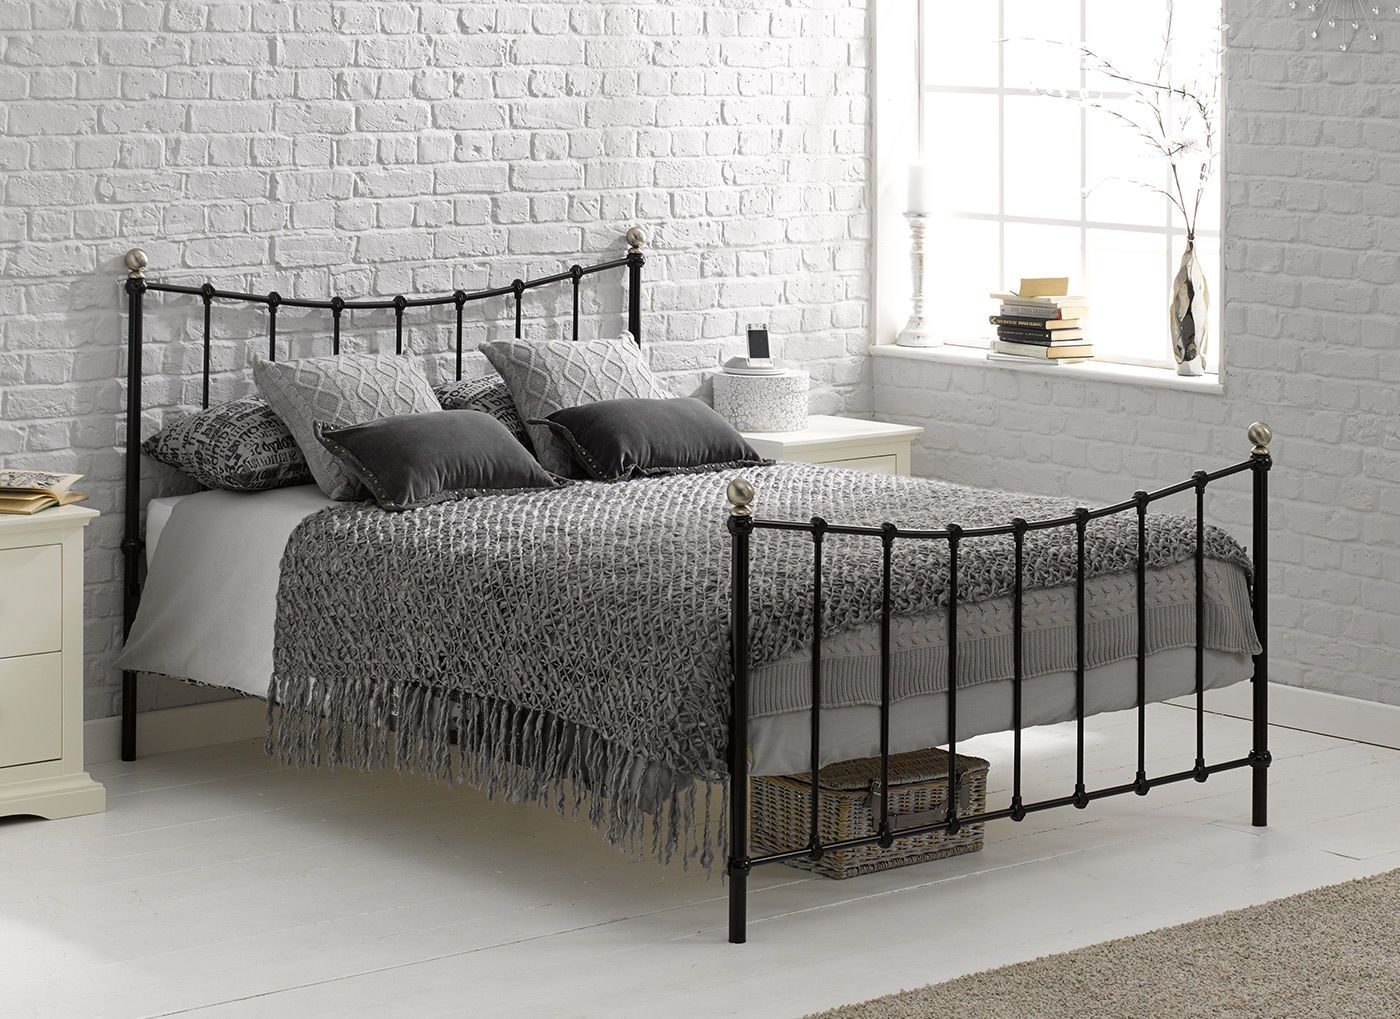 Uncategorized Dreams Metal Beds jasmine black metal bed frame beds frames and finished in a contemporary sleek our is beautifully